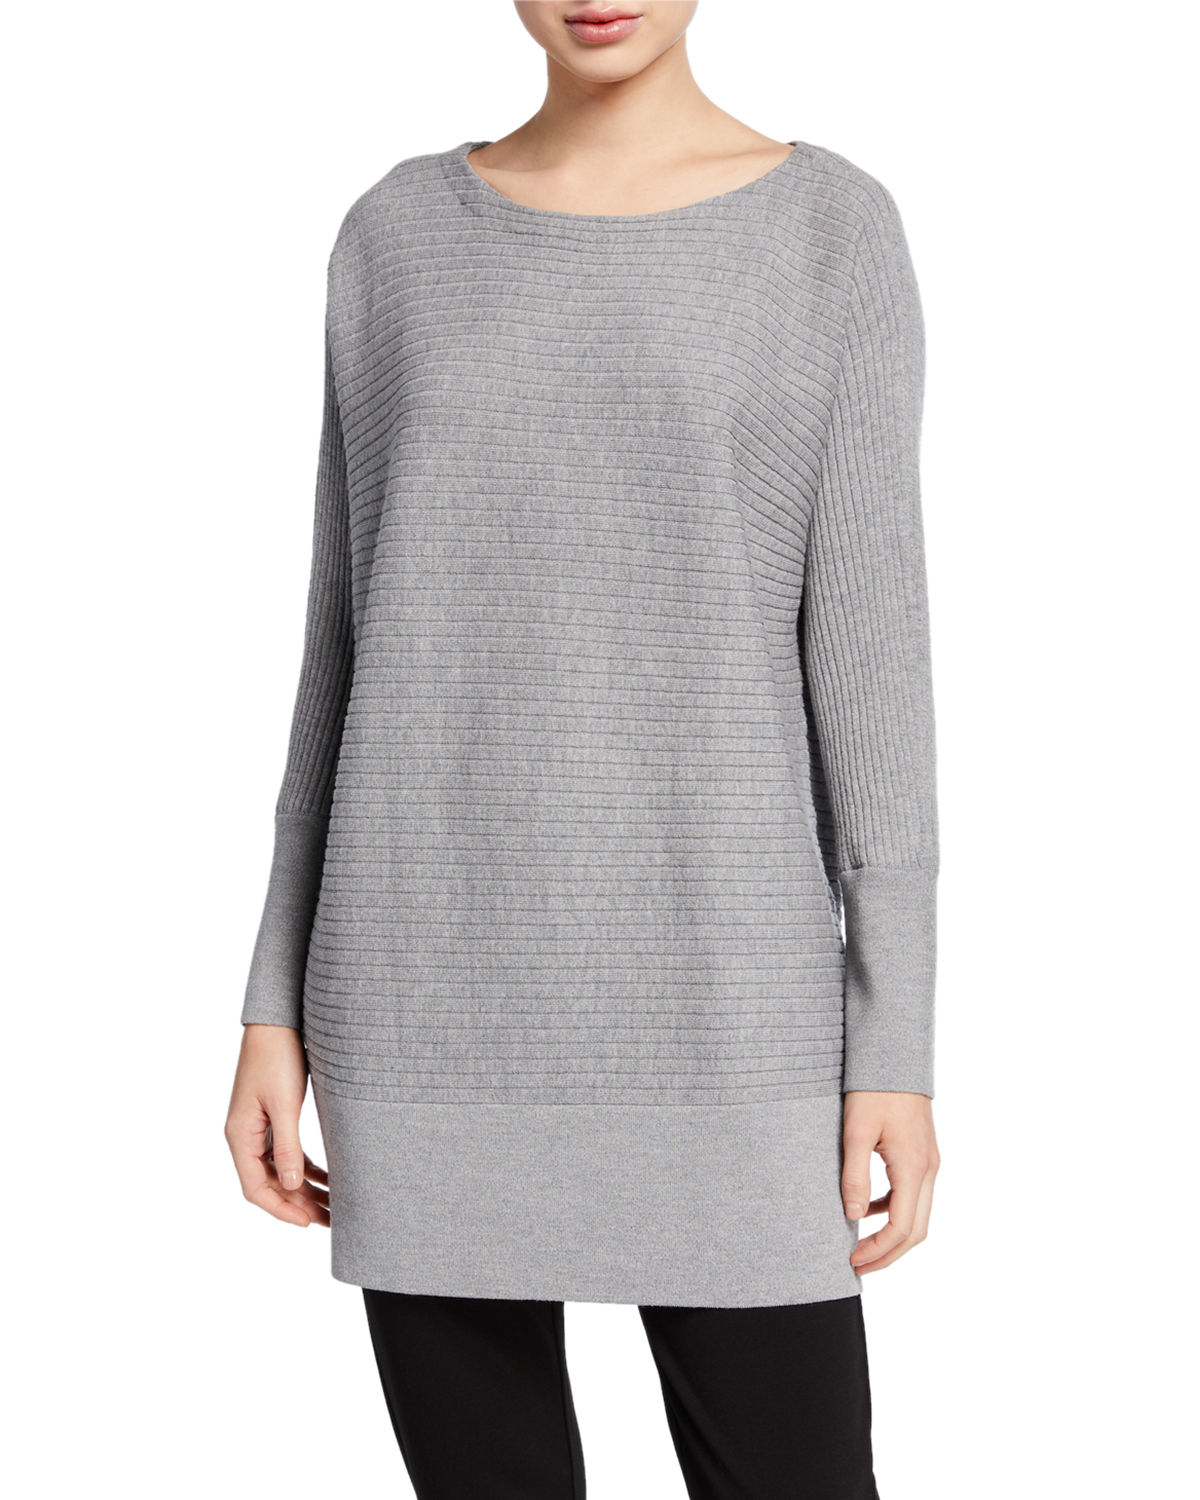 Eileen Fisher PLUS SIZE WASHABLE WOOL BATEAU-NECK RIBBED TUNIC SWEATER